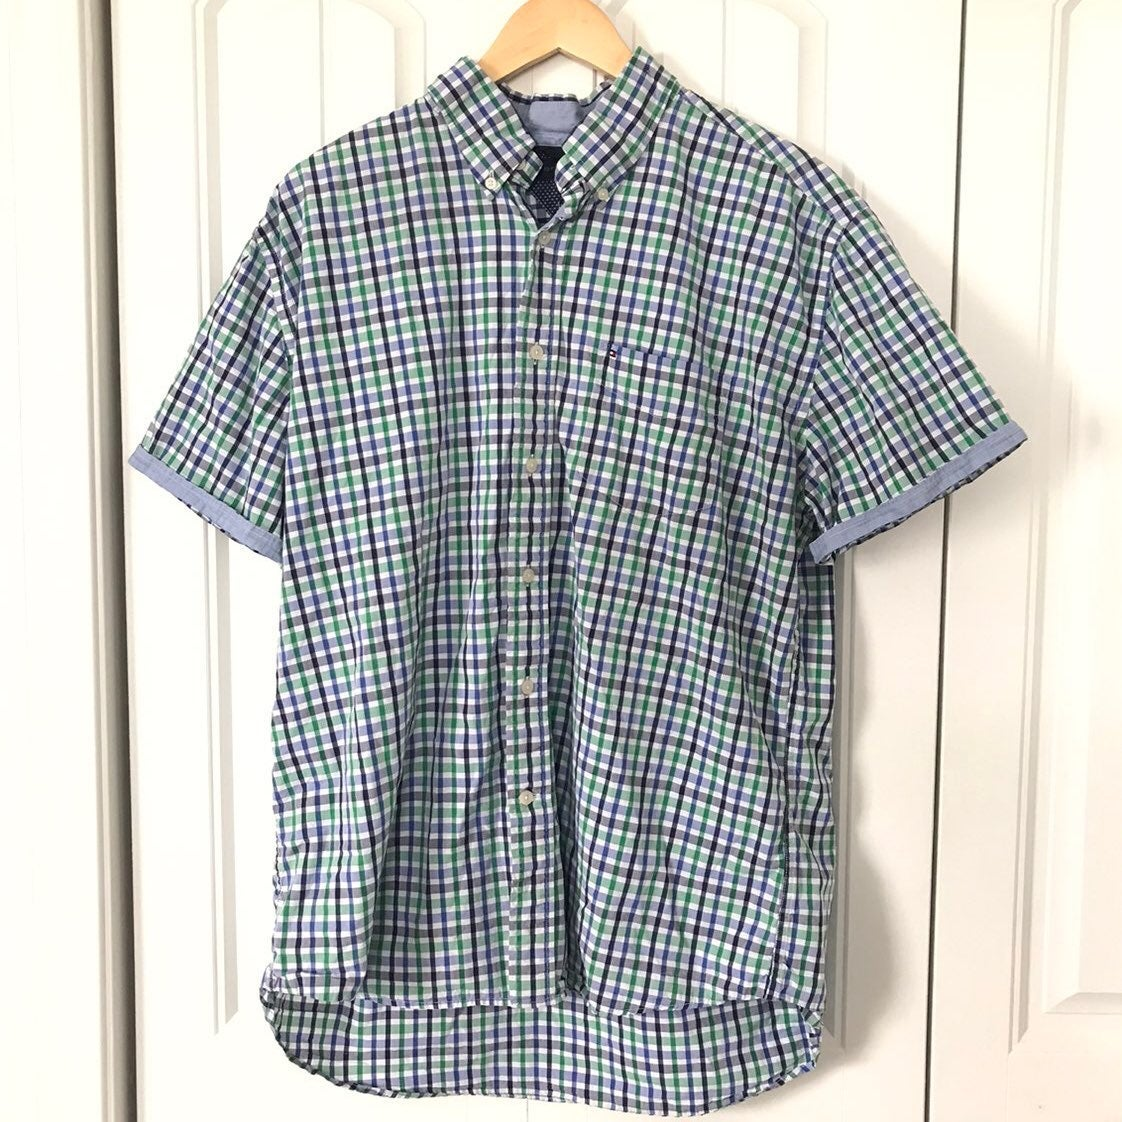 Tommy Hilfiger short sleeve button down